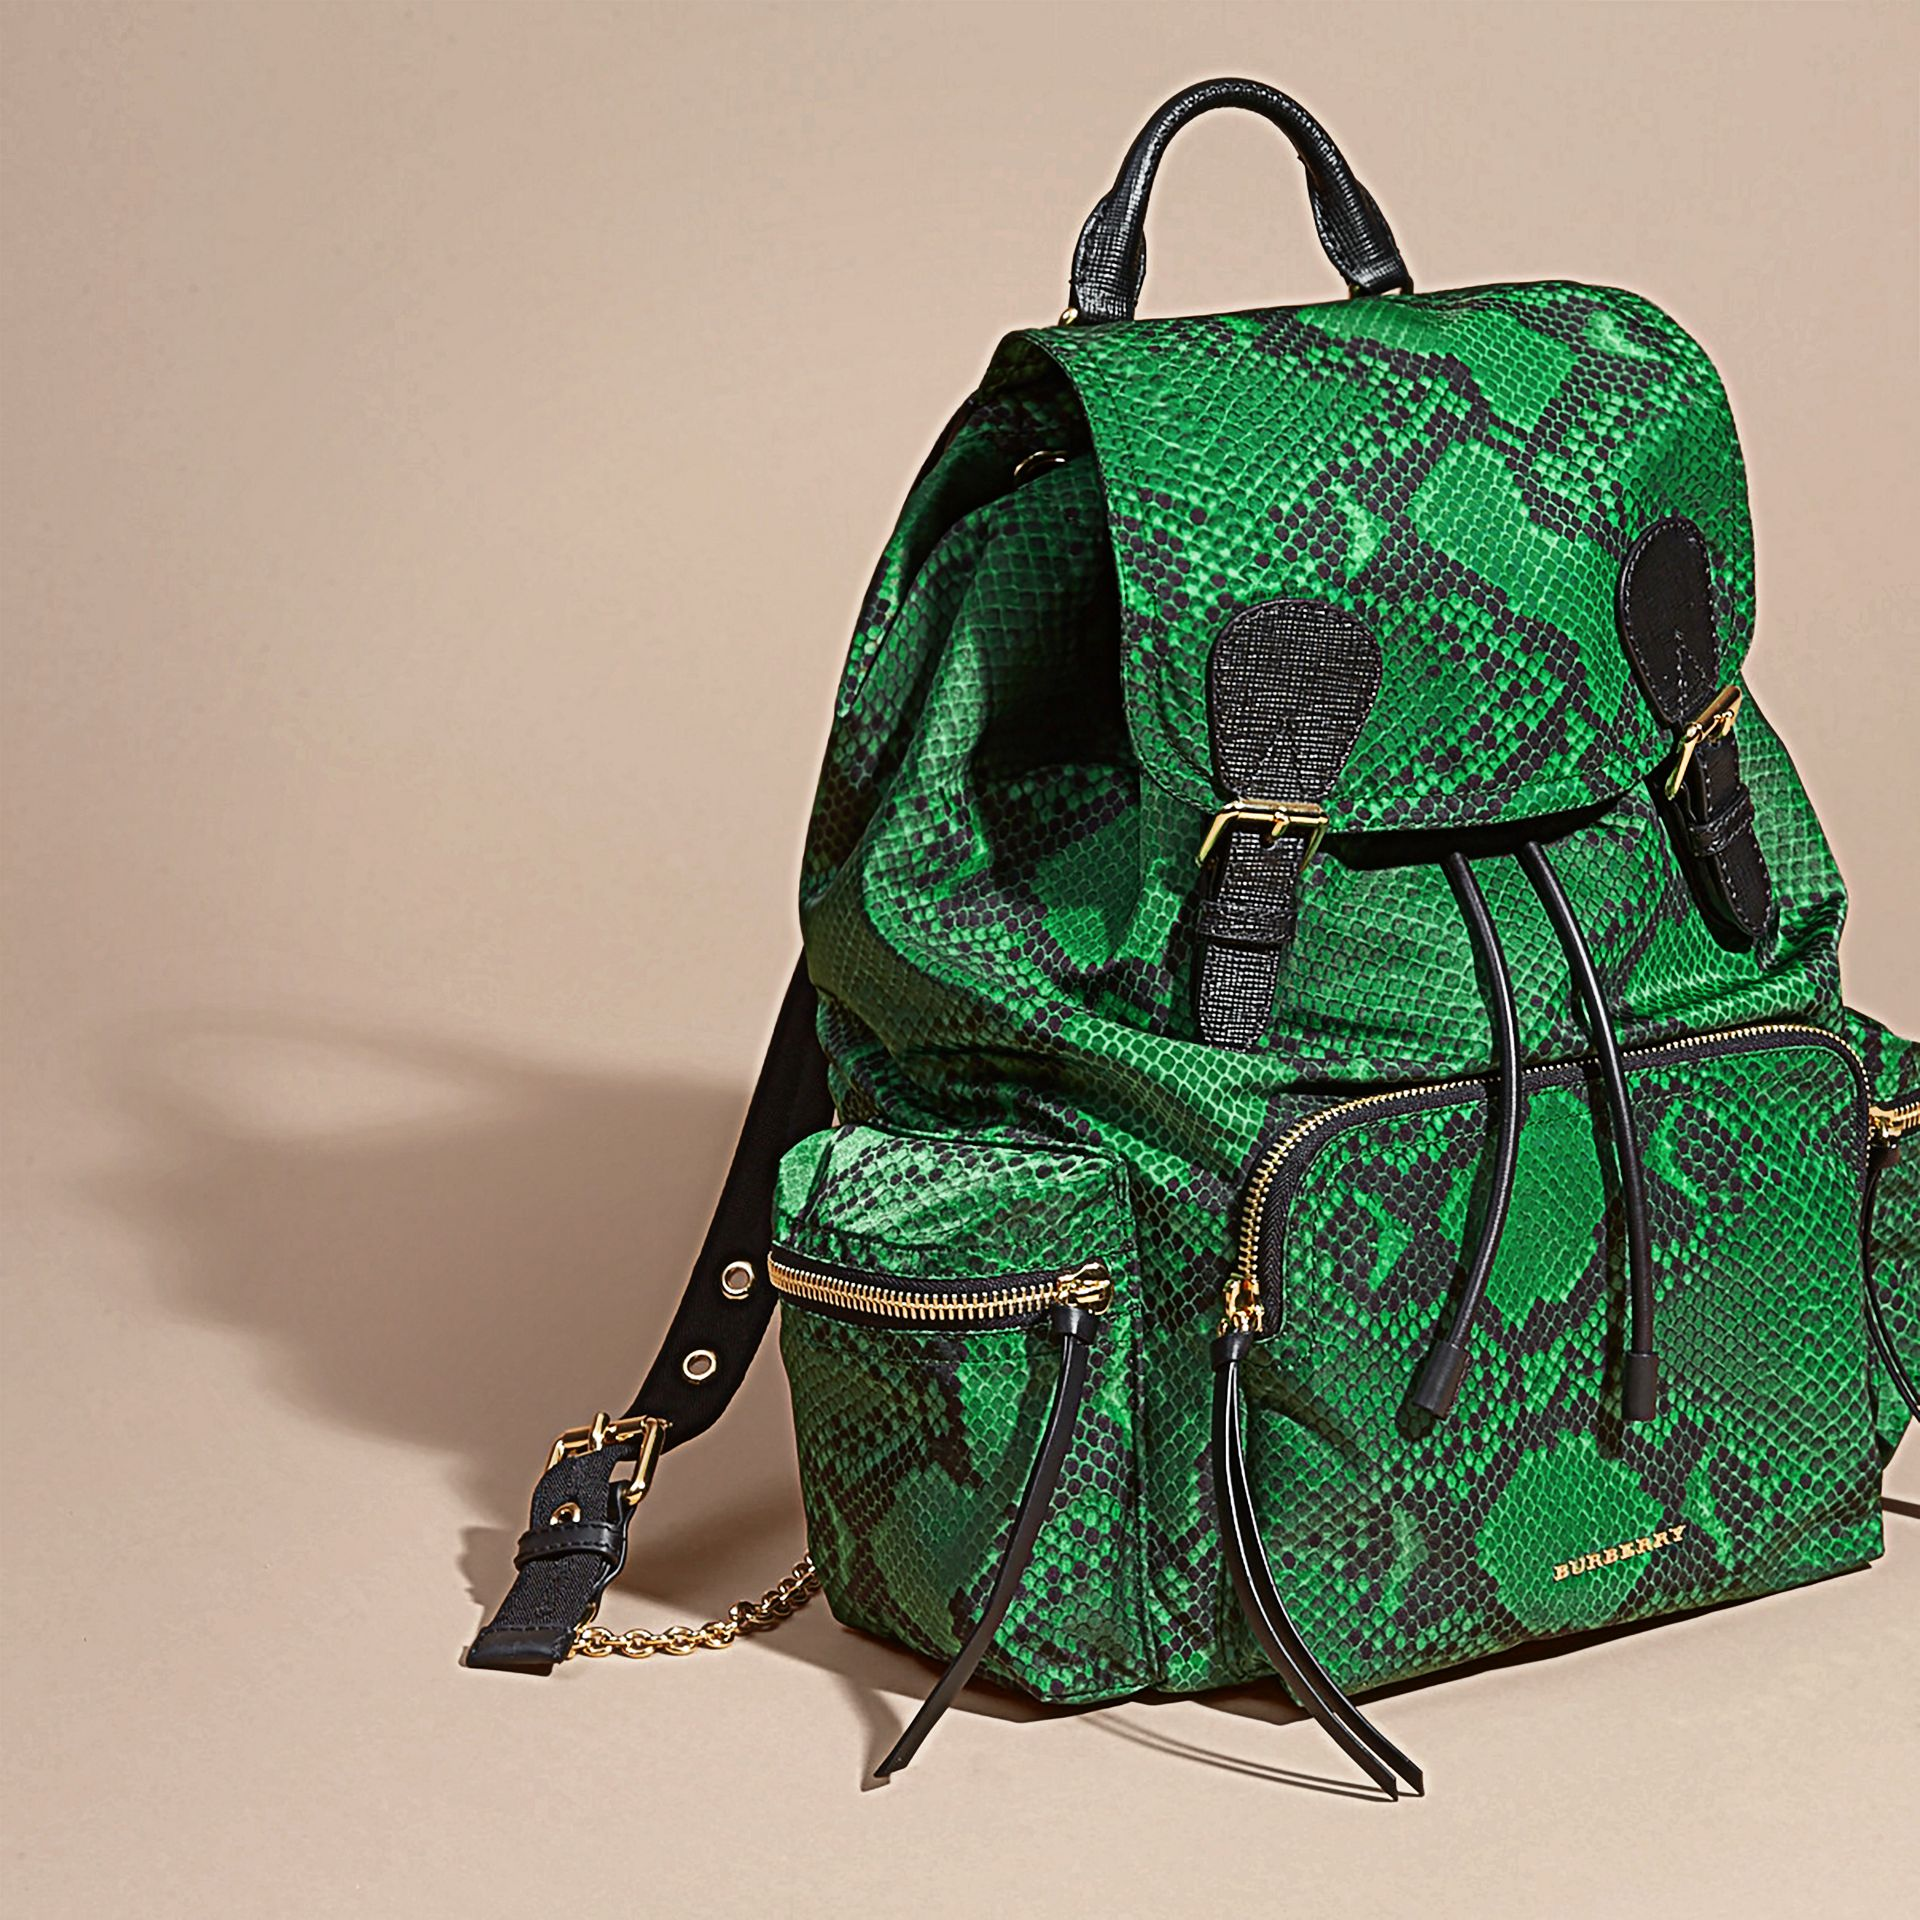 Grand sac The Rucksack en nylon à imprimé python et cuir Vert - photo de la galerie 7